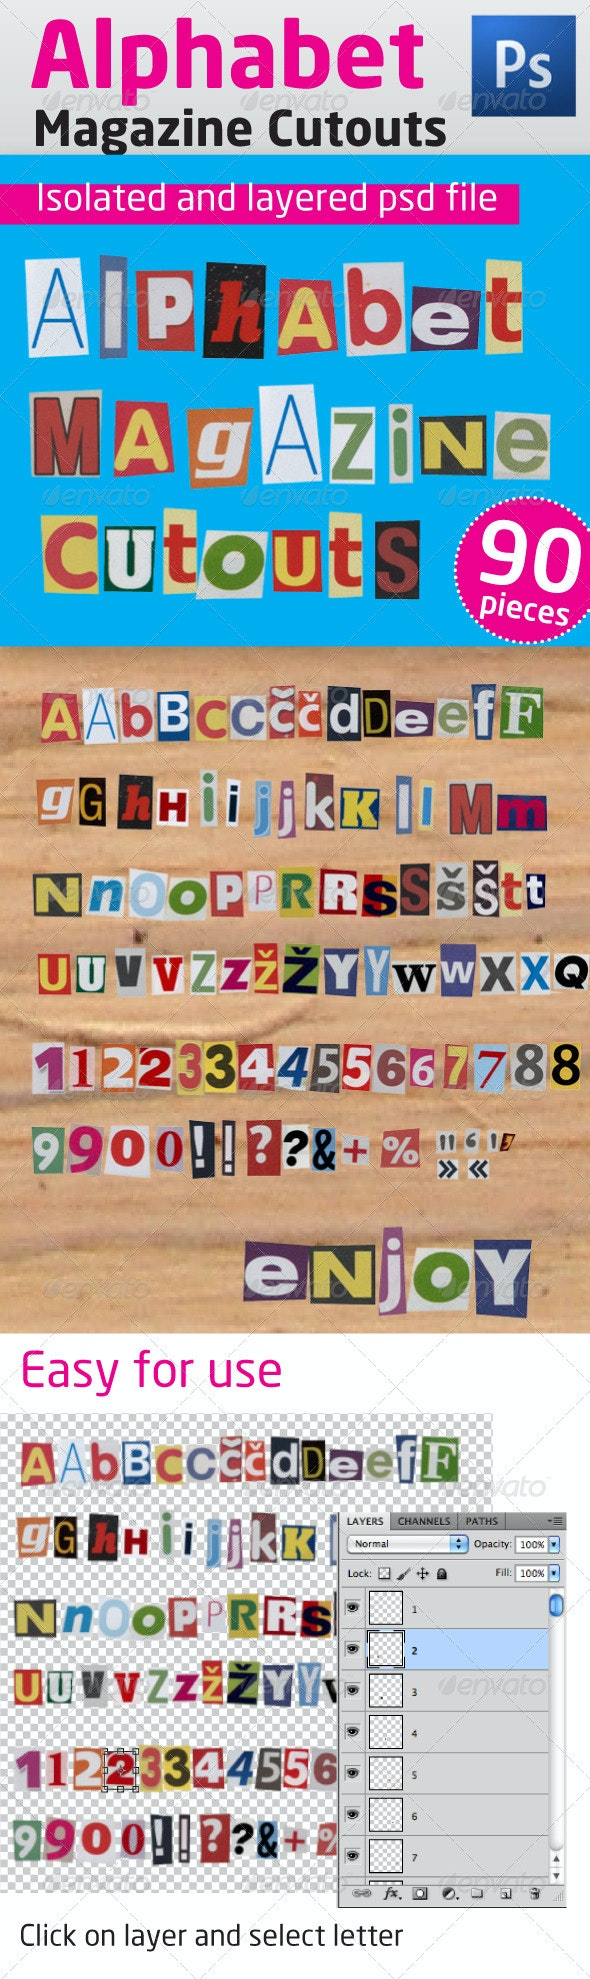 Alphabet Magazine Cutouts - Miscellaneous Isolated Objects